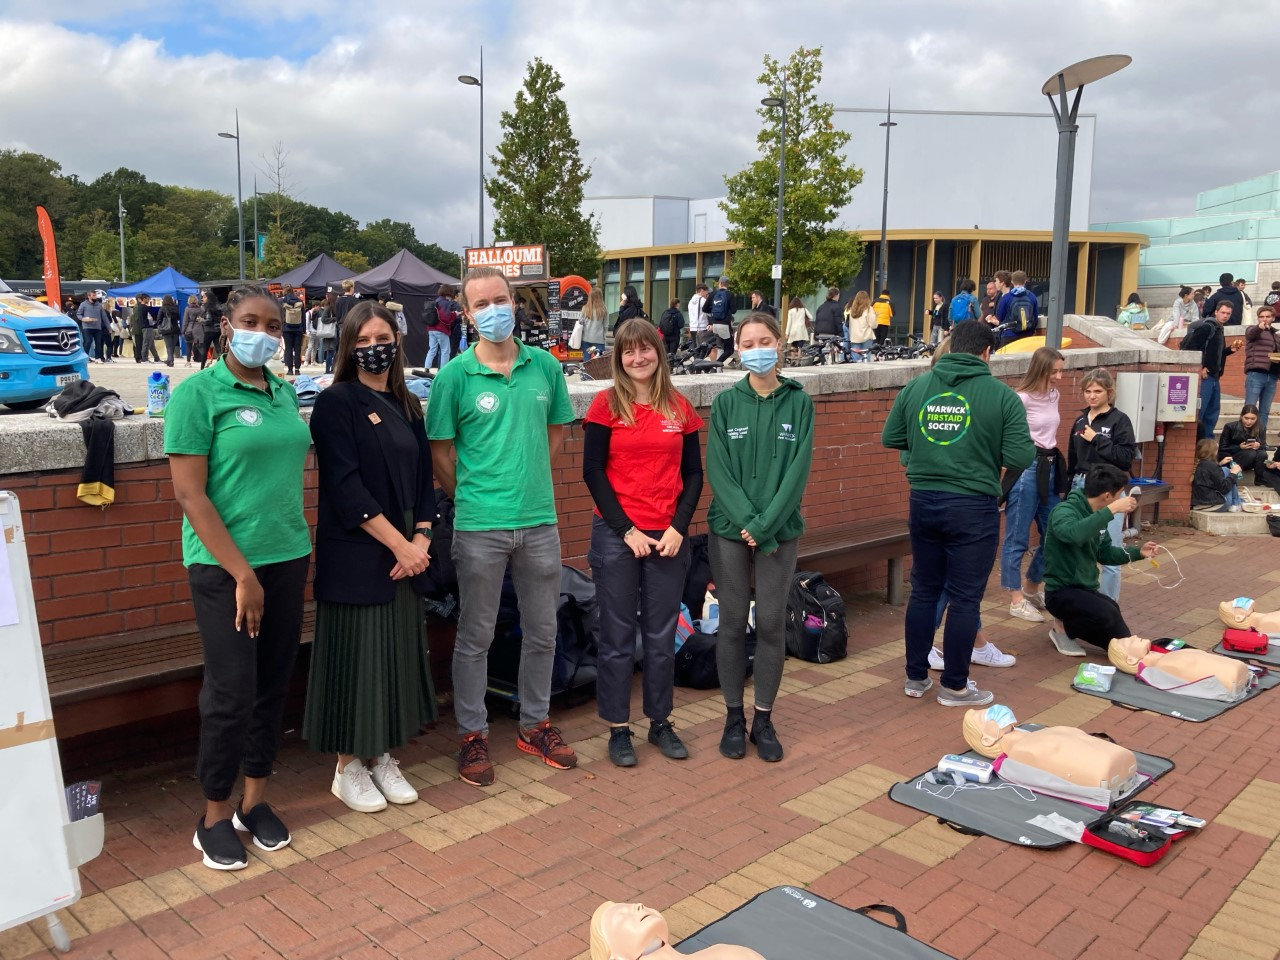 Photo of Jade Wilmot (Resuscitation for Medical Disciplines Society) and their team, Dr Jane Bryan (Community Values Education Programme) and representatives from the Warwick Life Saving Society and the Warwick First Aid Society at the event